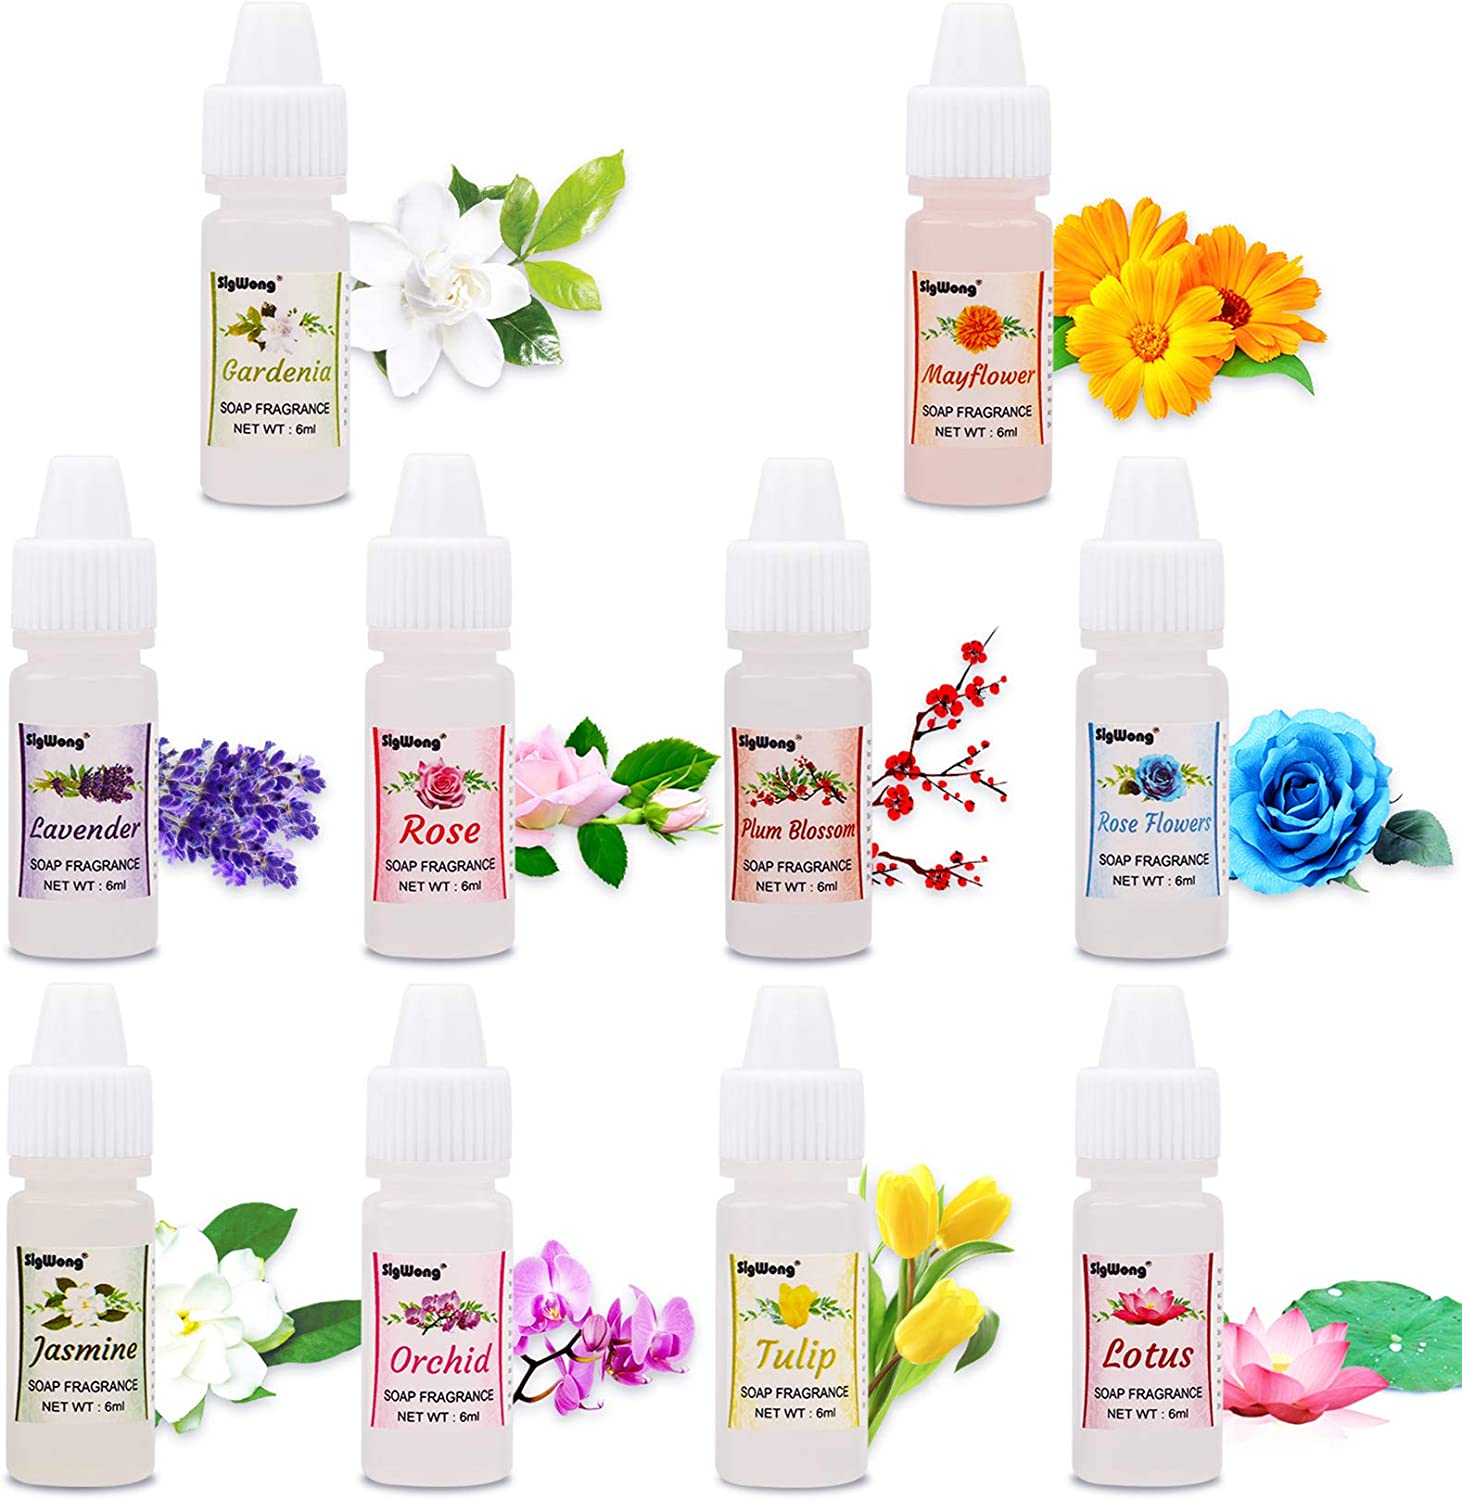 Soap Making Scents - 10 Liquid Floral Soap Fragrance Oil for Bath Bomb Making, Candle Making - Concentrated Food Grade Soap Flavoring for Soap Making Supplies, Cosmetic, DIY Slime (0.25/6ml Each)